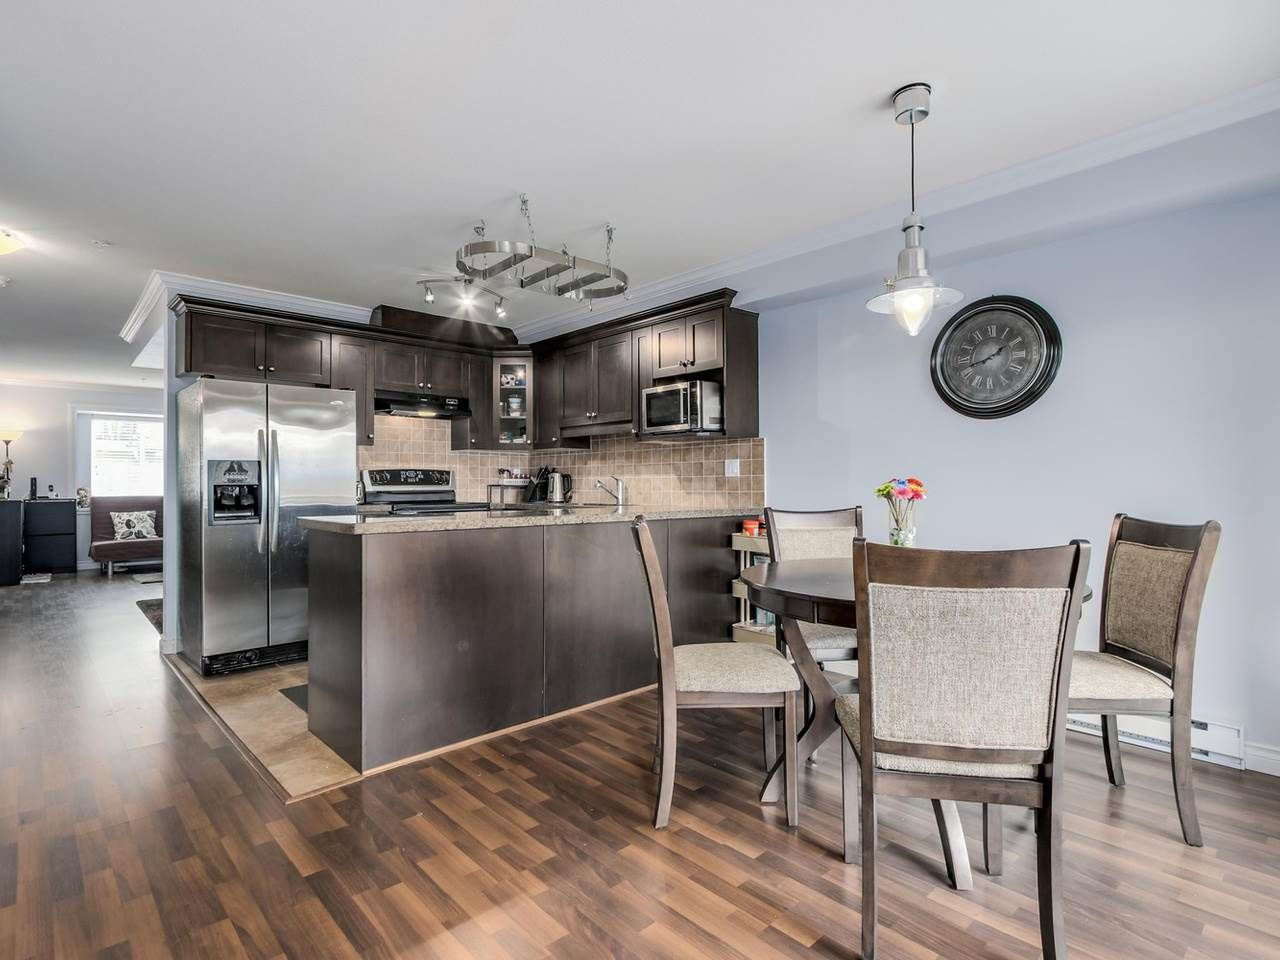 """Photo 6: Photos: 10 11255 132 Street in Surrey: Bridgeview Townhouse for sale in """"FRASERVIEW TERRACE"""" (North Surrey)  : MLS®# R2086692"""